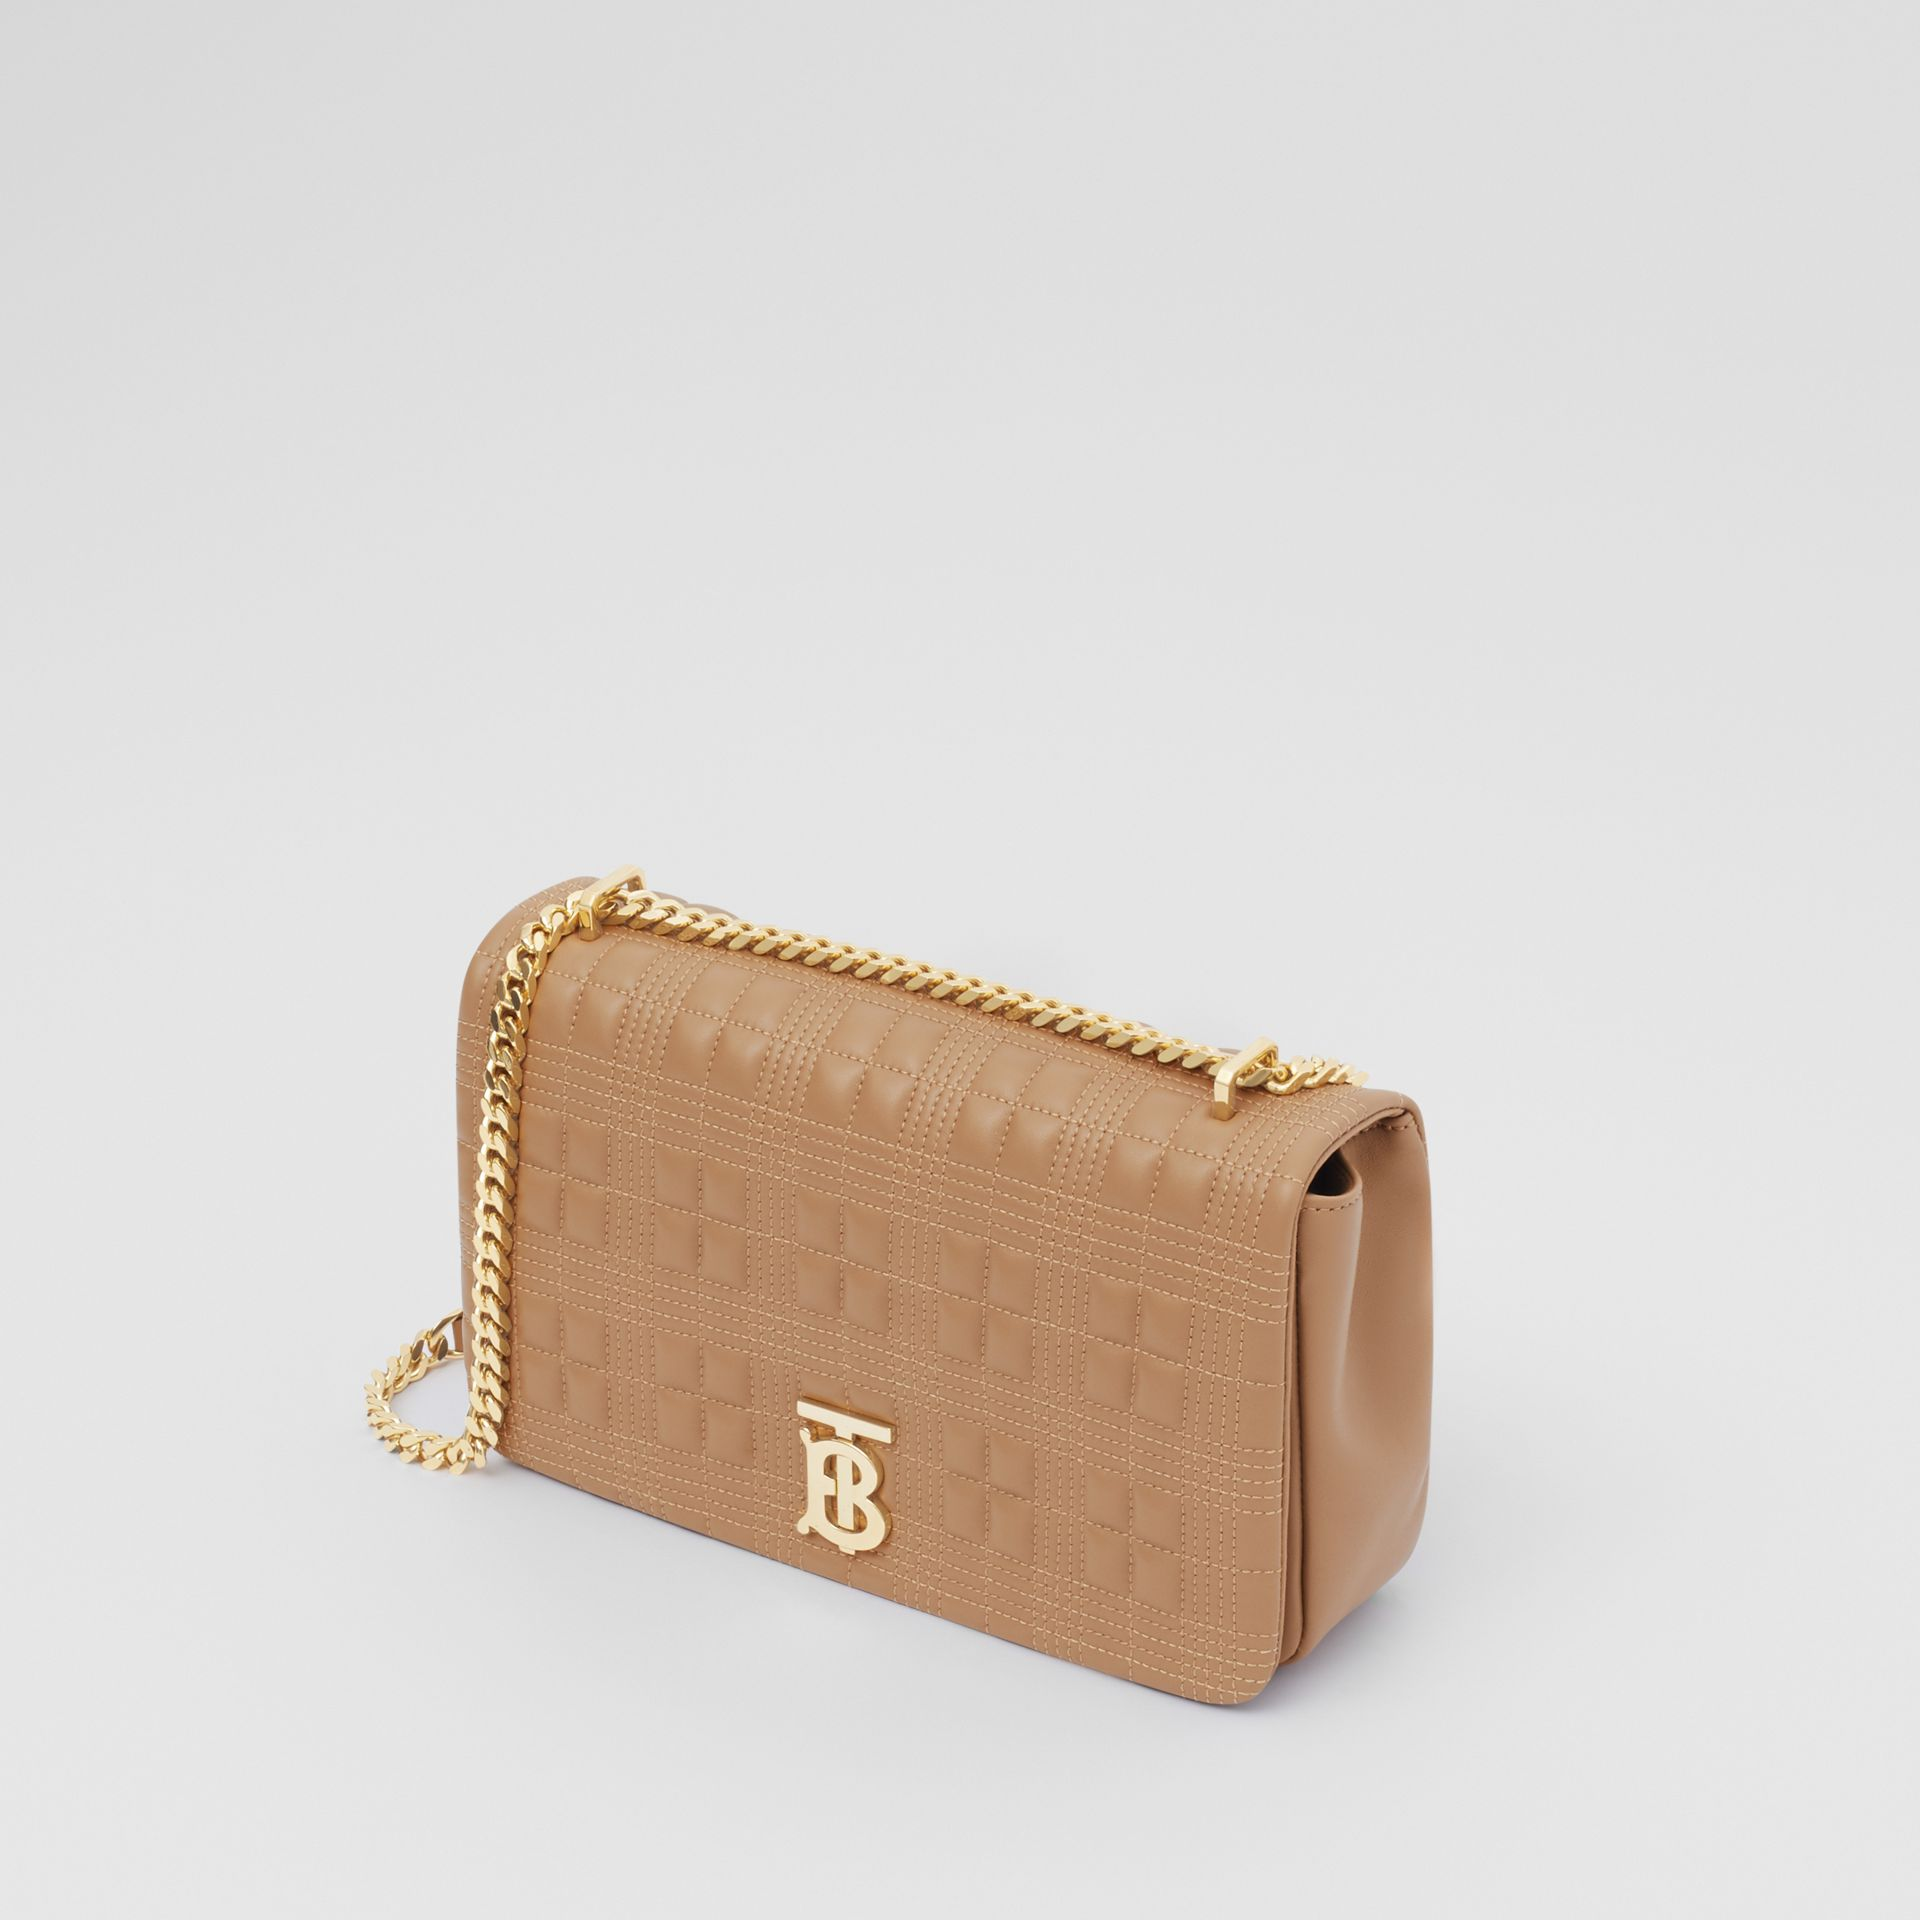 Medium Quilted Check Lambskin Lola Bag in Camel - Women | Burberry - gallery image 3